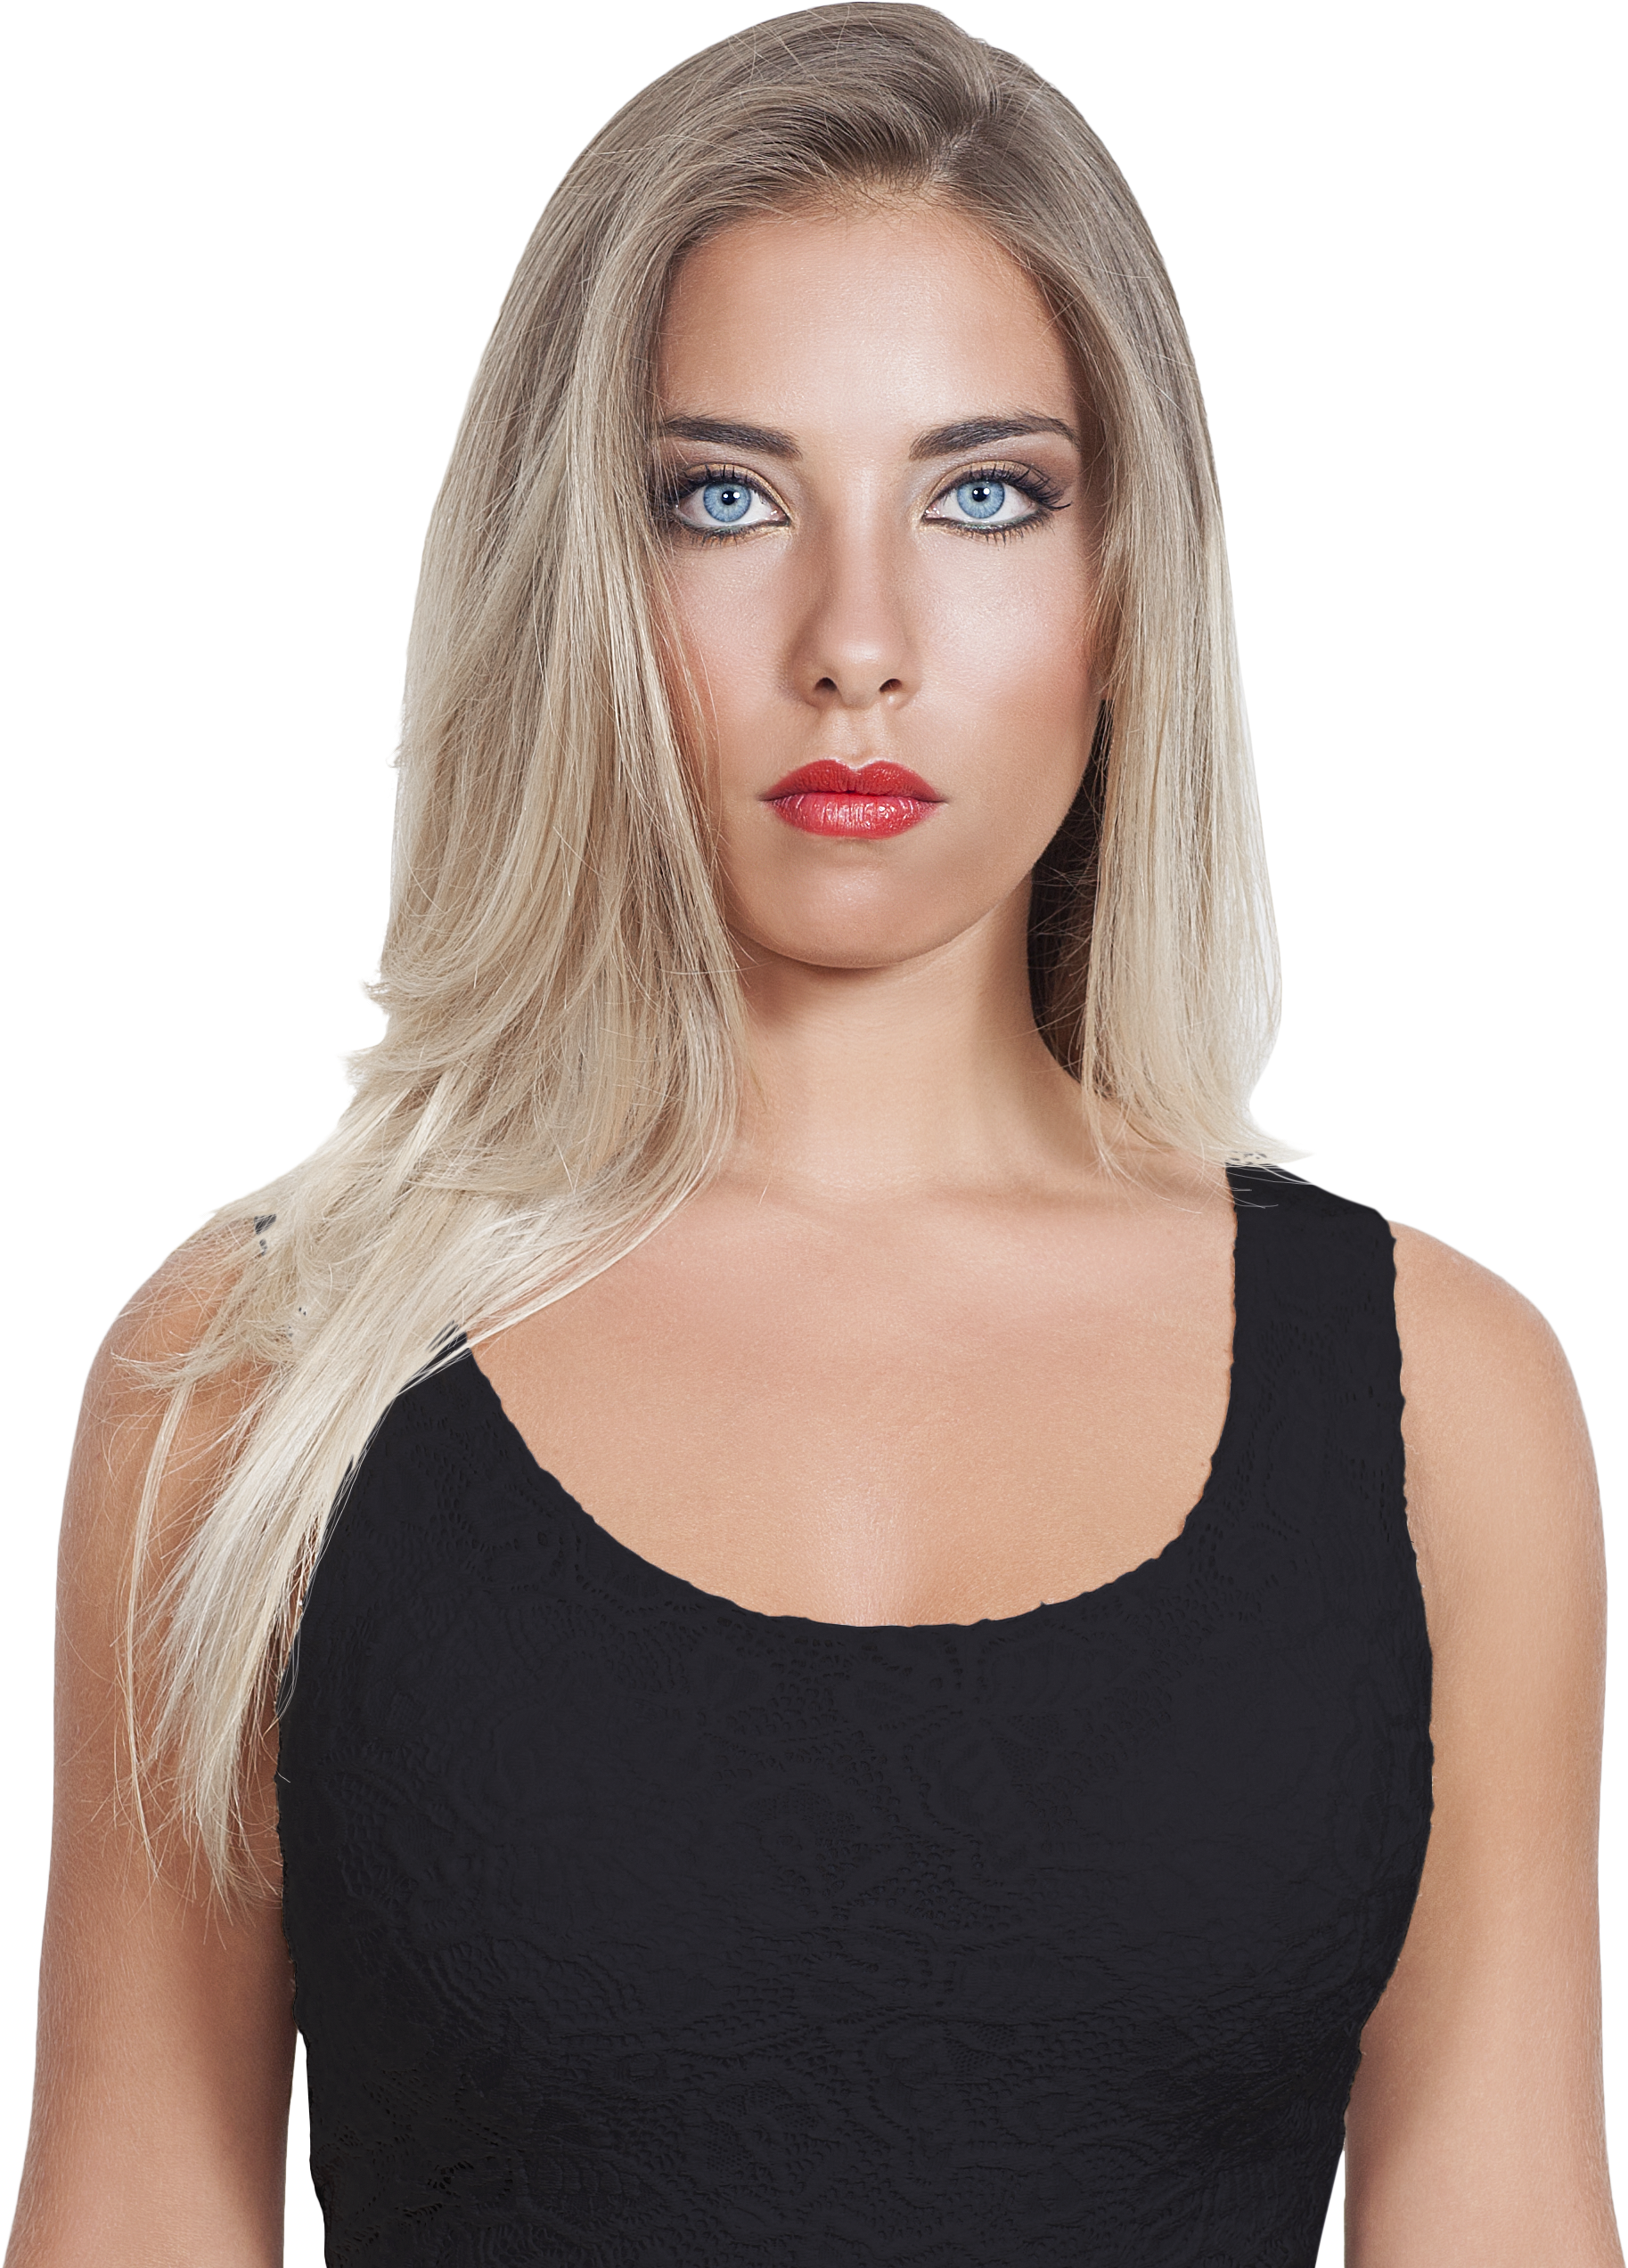 Blonde Girl Png (+).